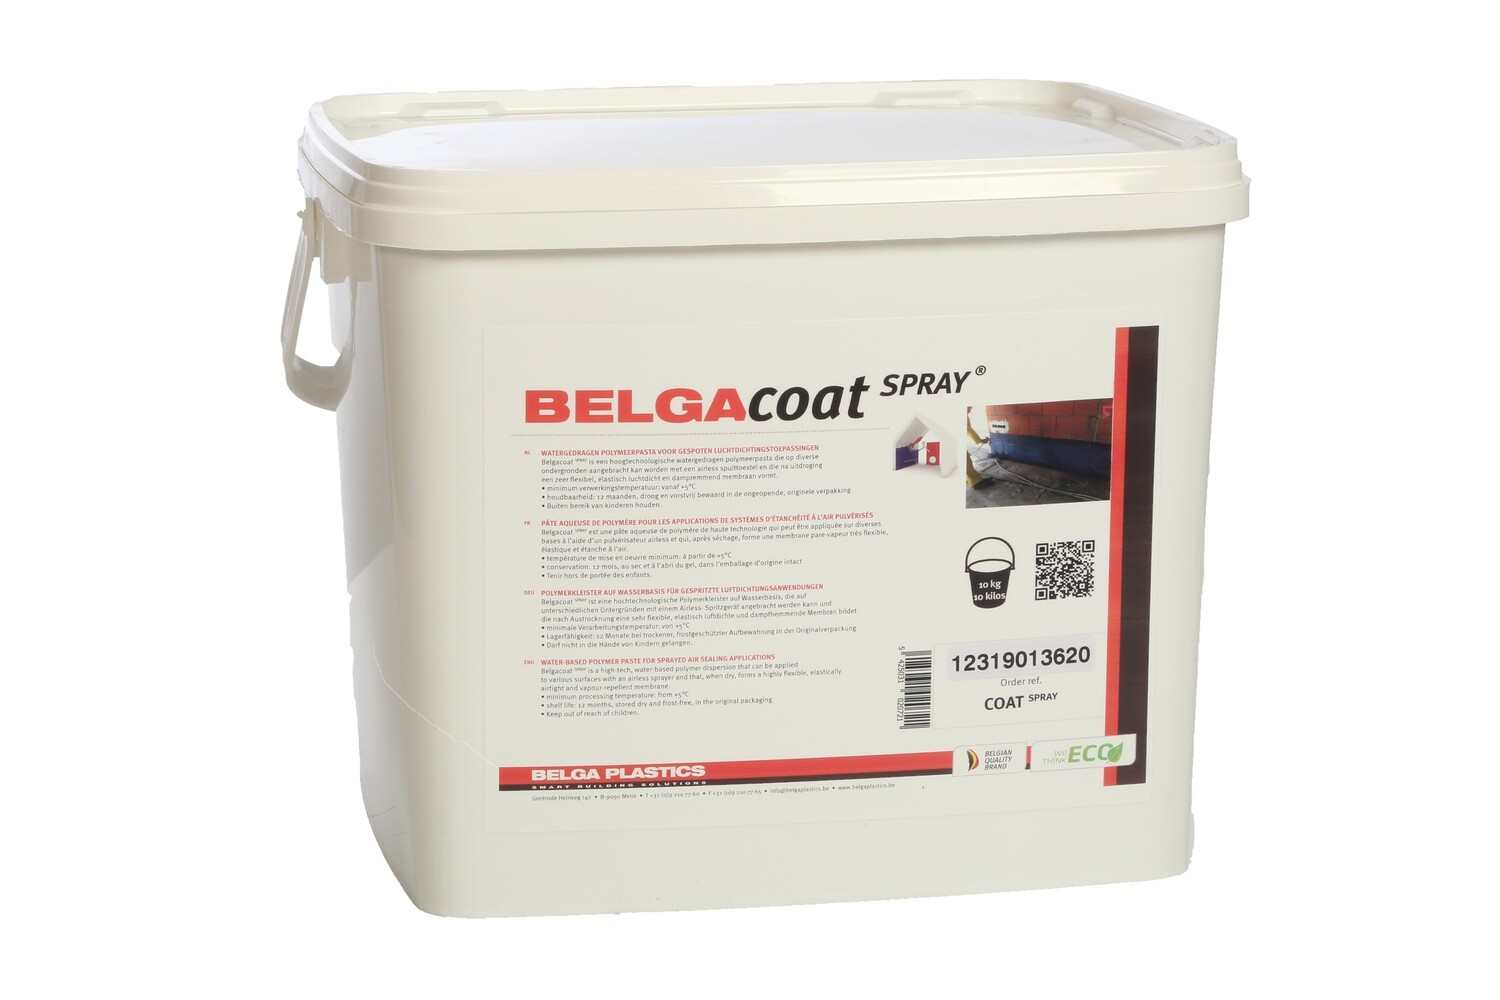 Belgacoat Spray dark 10 liter, air tight paint